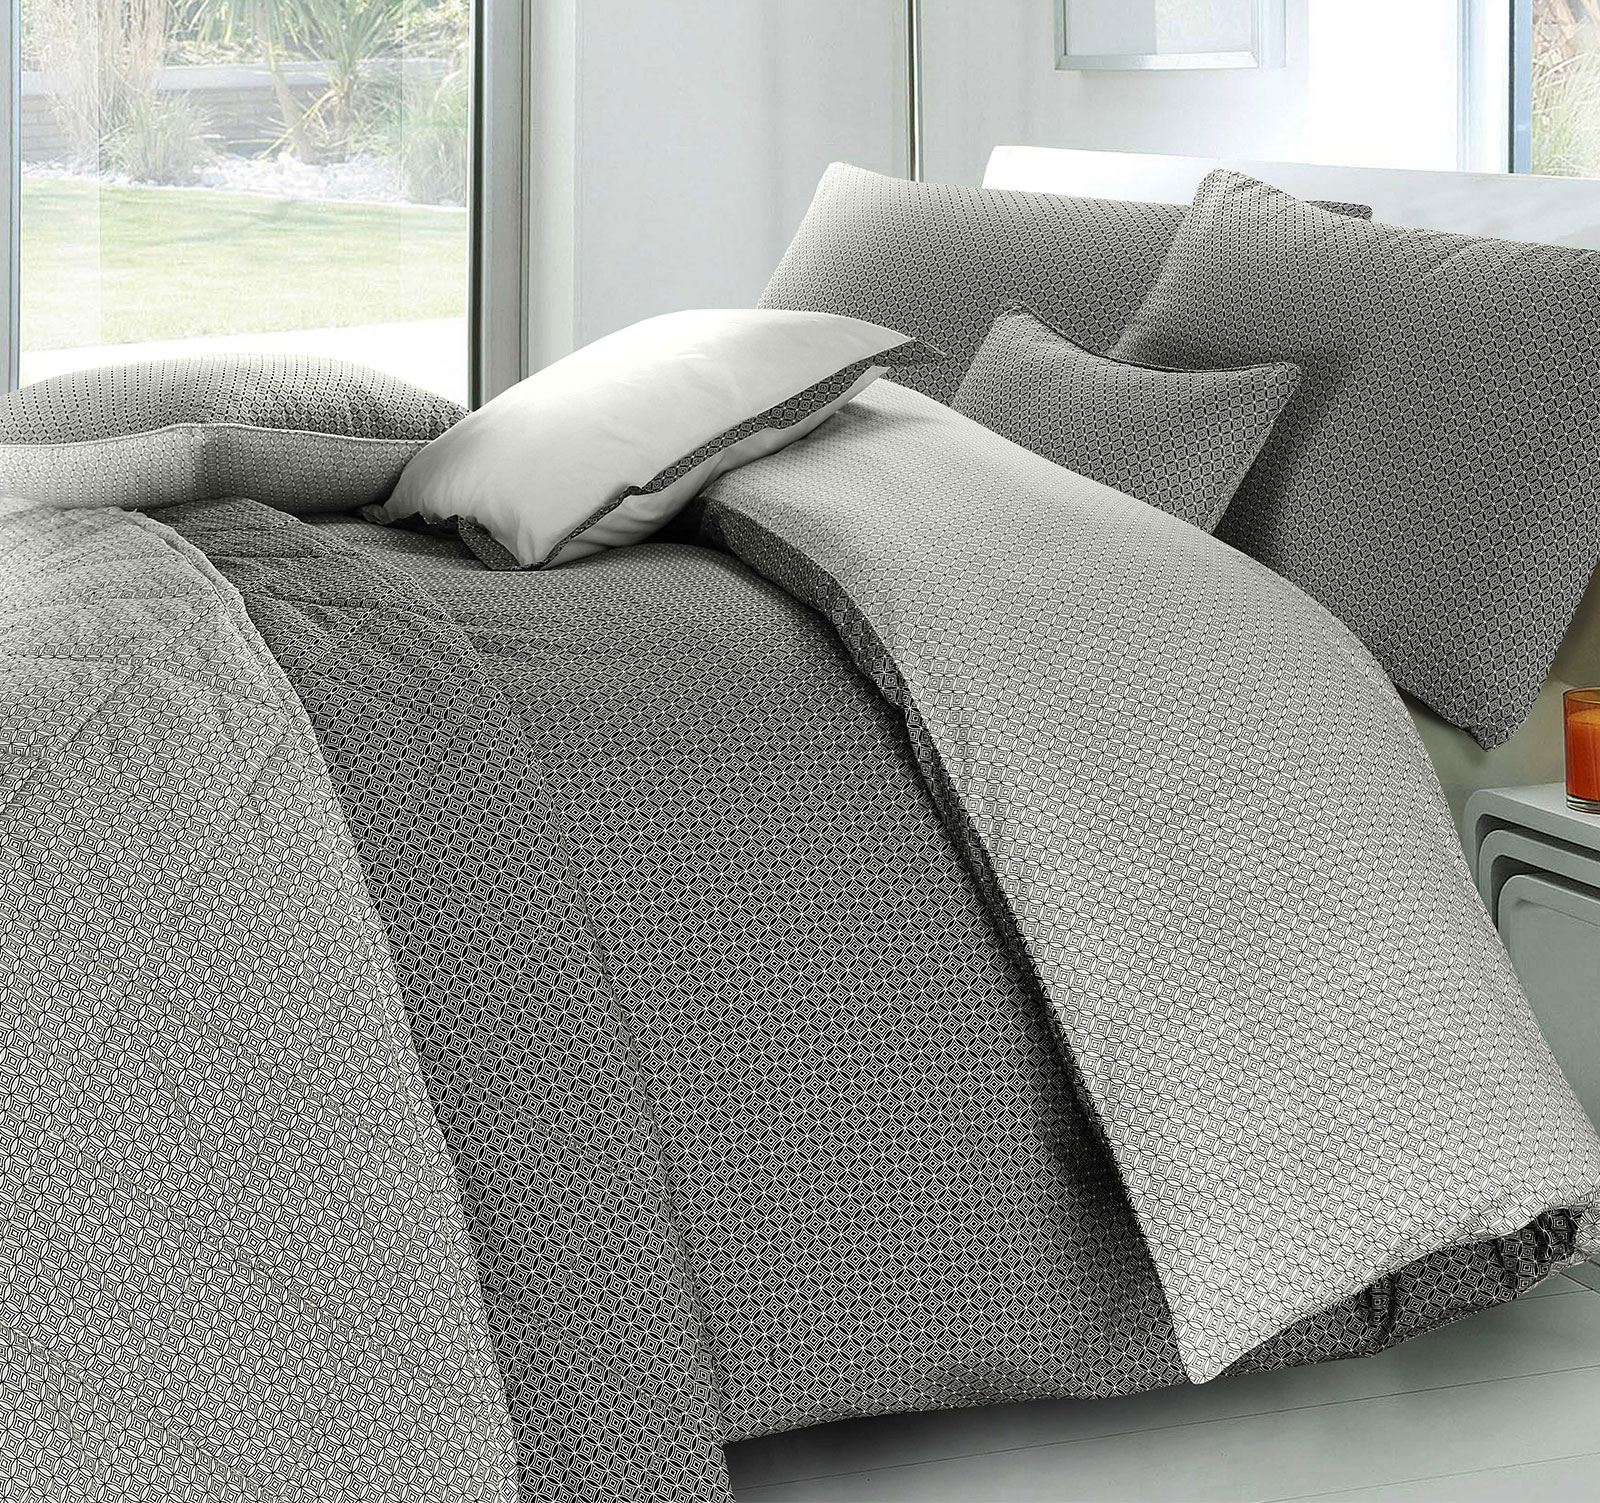 com flannel pattern duvet covers decorlinen cover